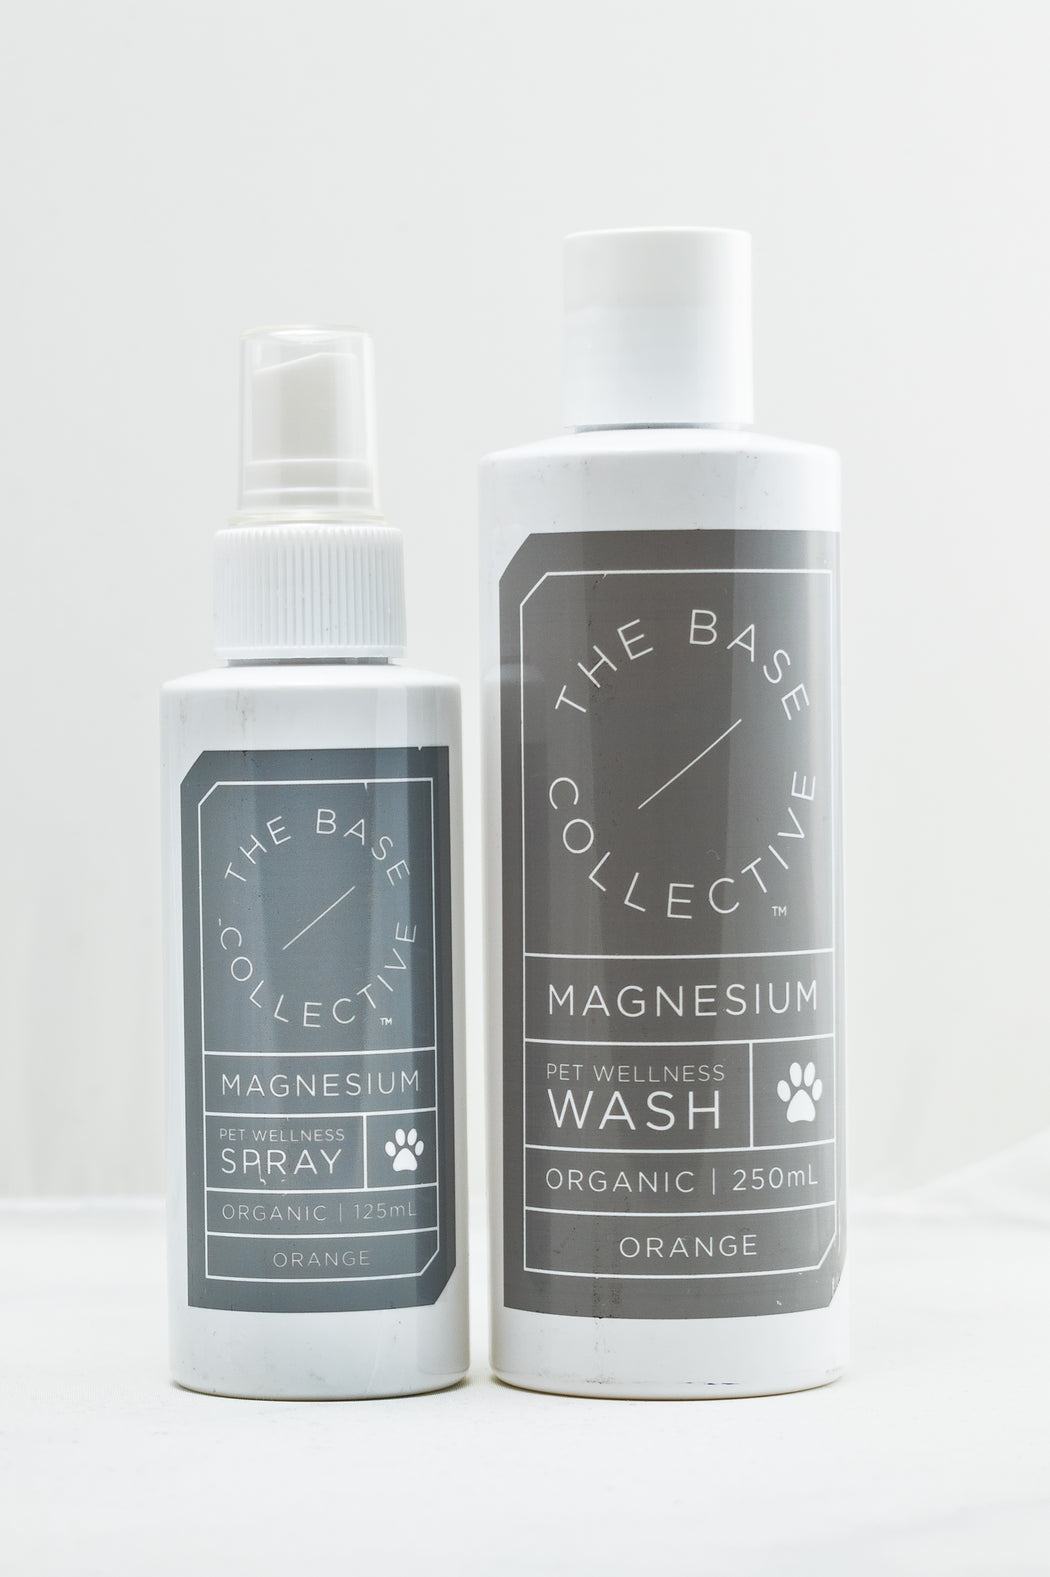 Pet Wellness Magnesium Spray